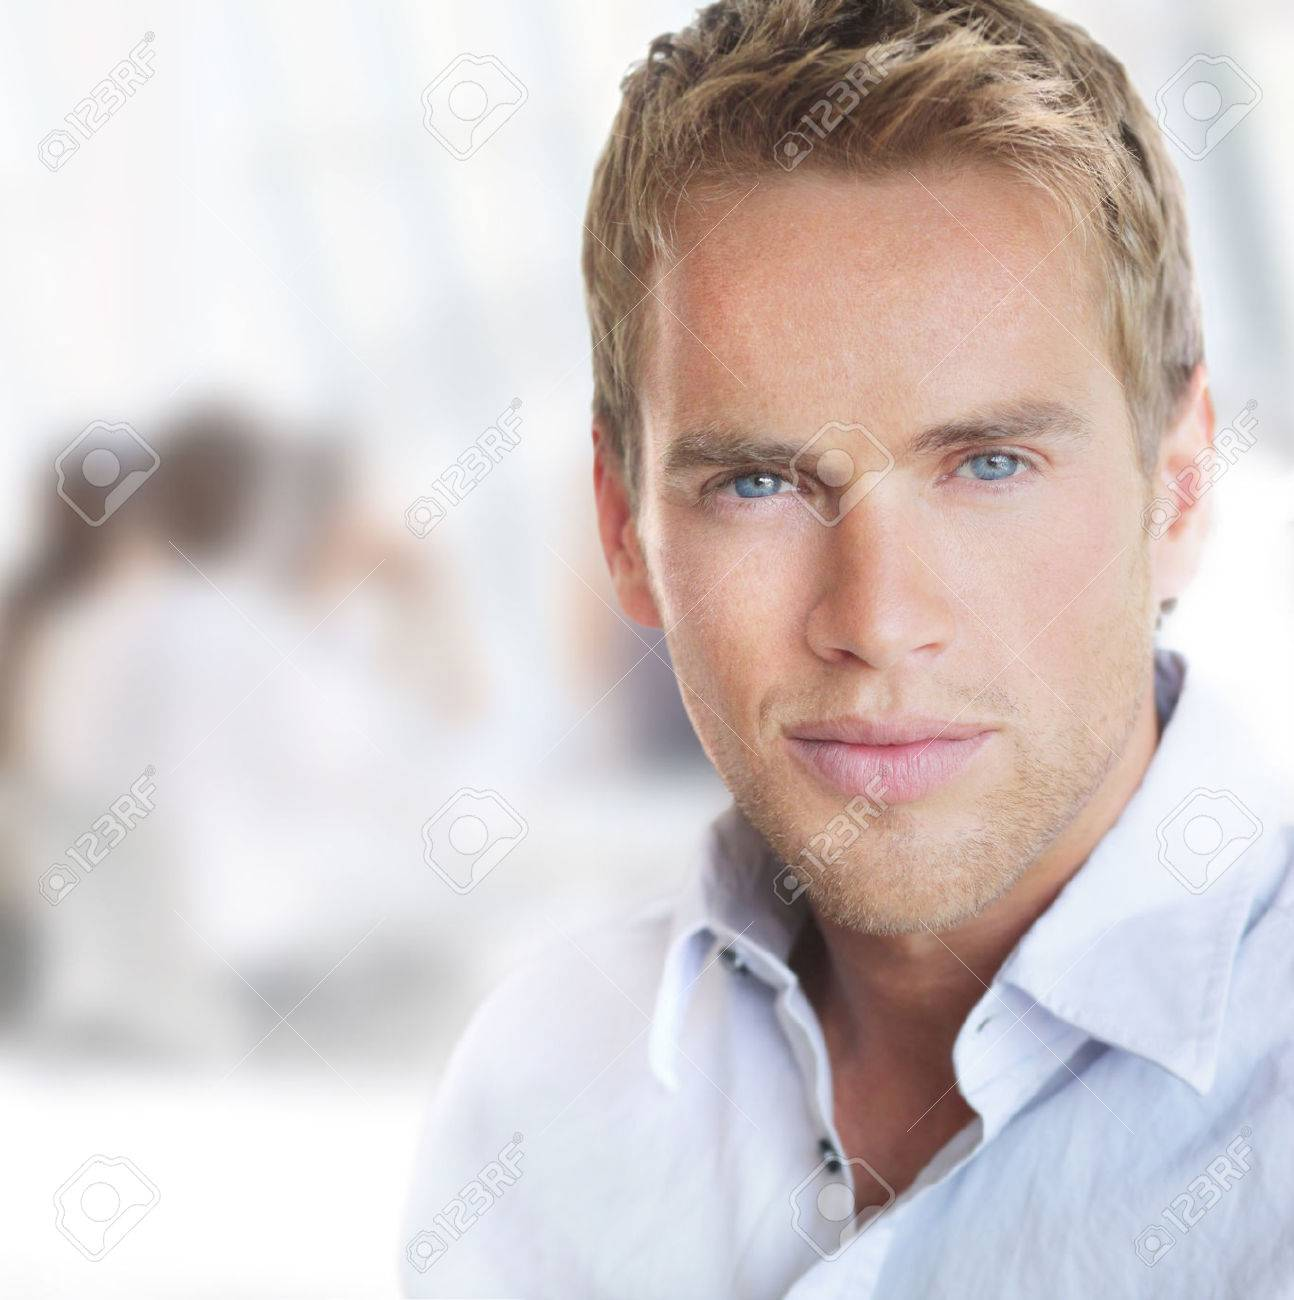 Bright portrait of a young good-looking successful businessman in office setting Banque d'images - 25087959